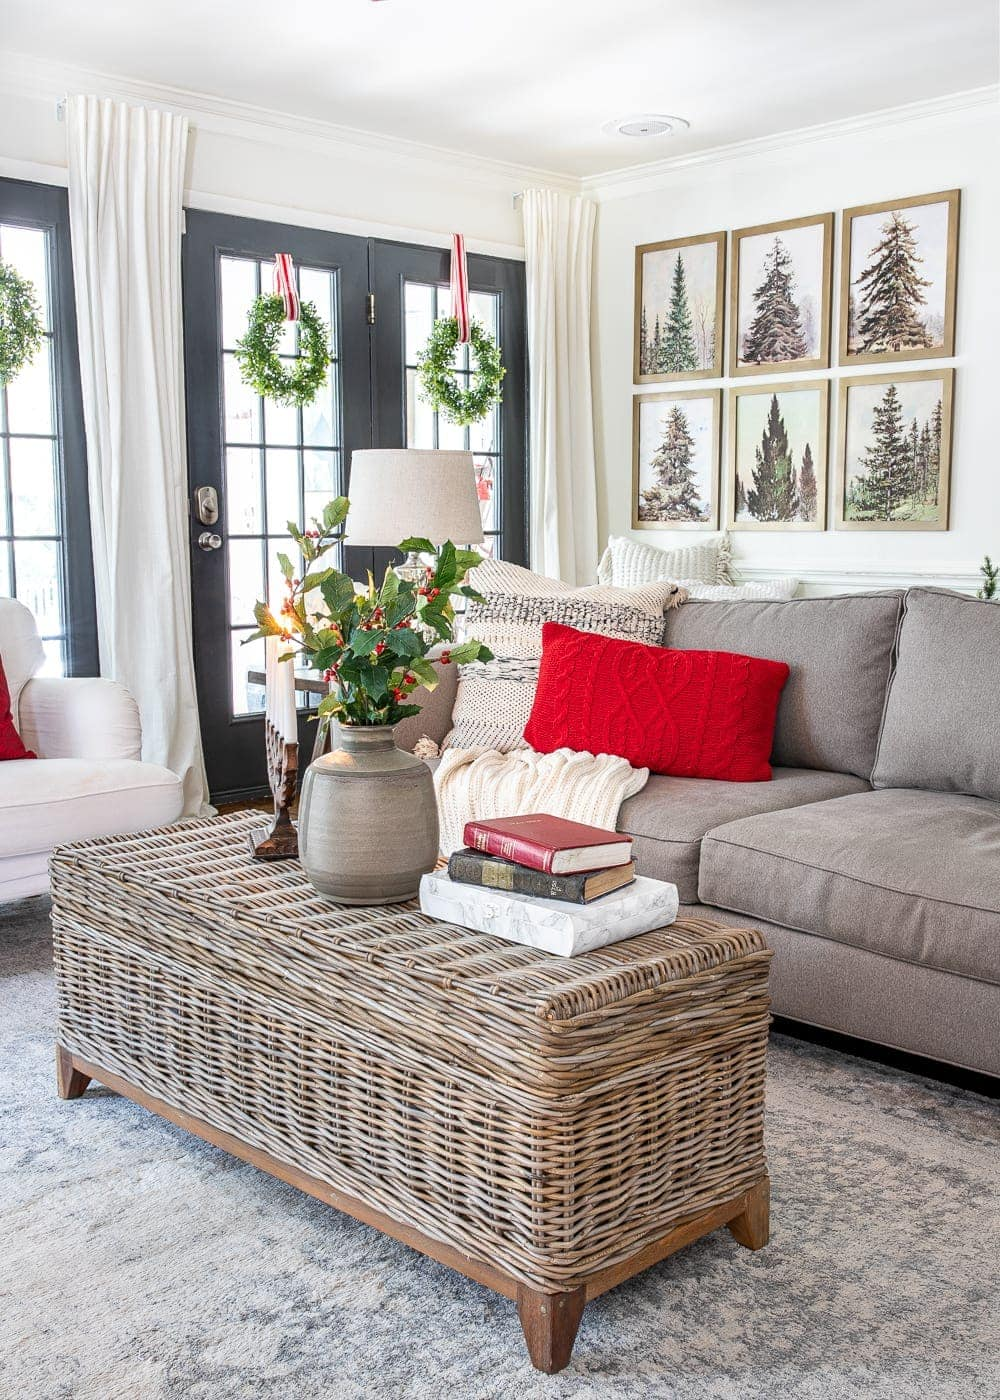 Christmas decor ideas | modern cozy Christmas living room